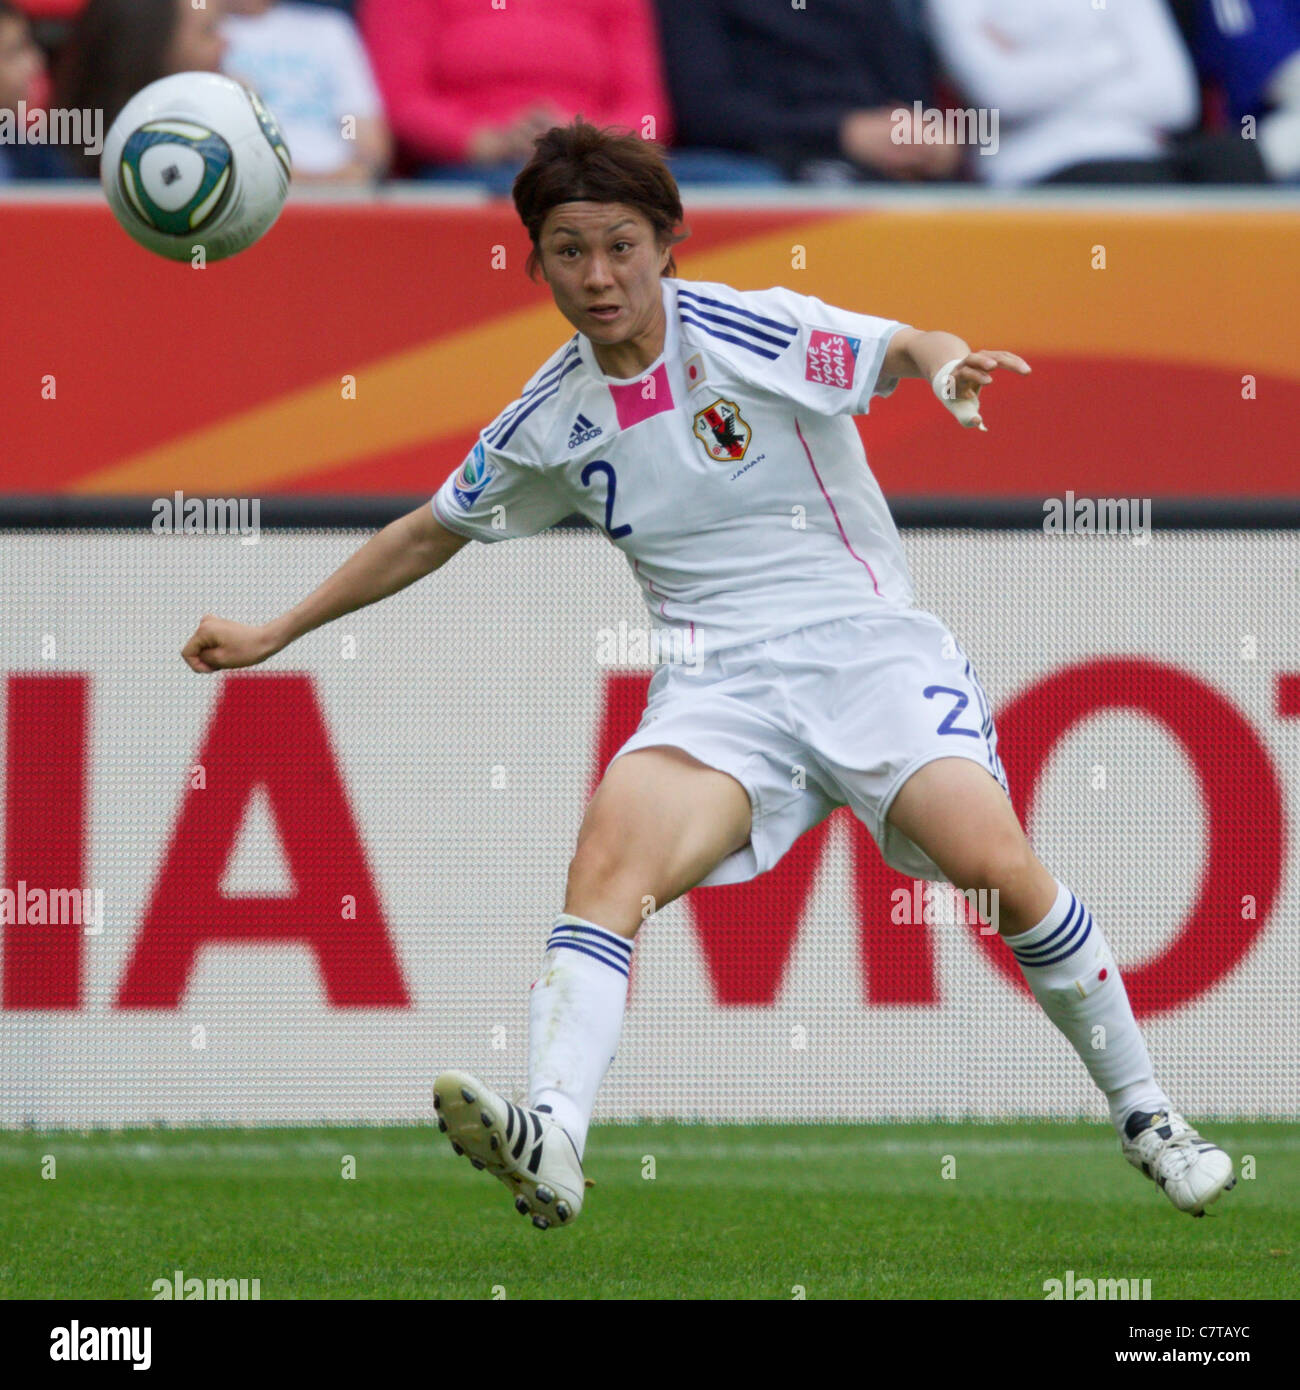 Yukari Kinga of Japan in action during a FIFA Women's World Cup Group B match against Mexico July 1, 2011. - Stock Image